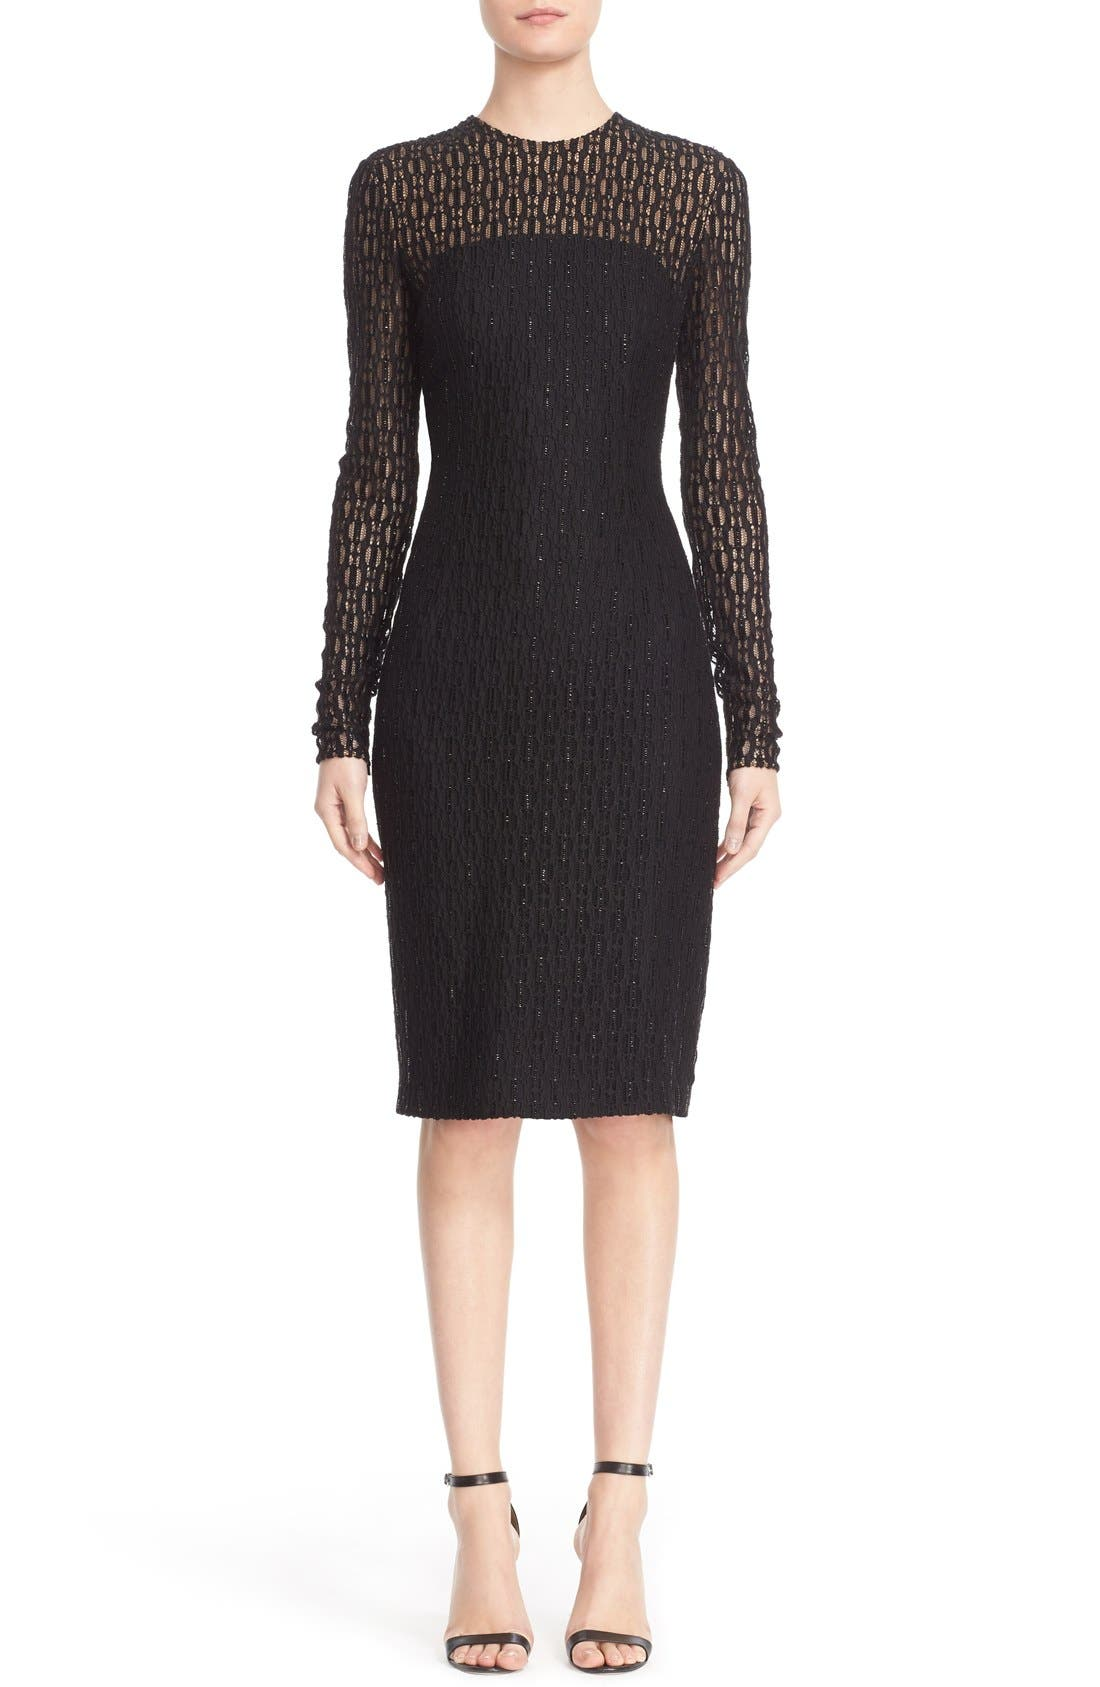 Alternate Image 1 Selected - Carmen Marc Valvo Couture Embellished Illusion Lace Knit Sheath Dress